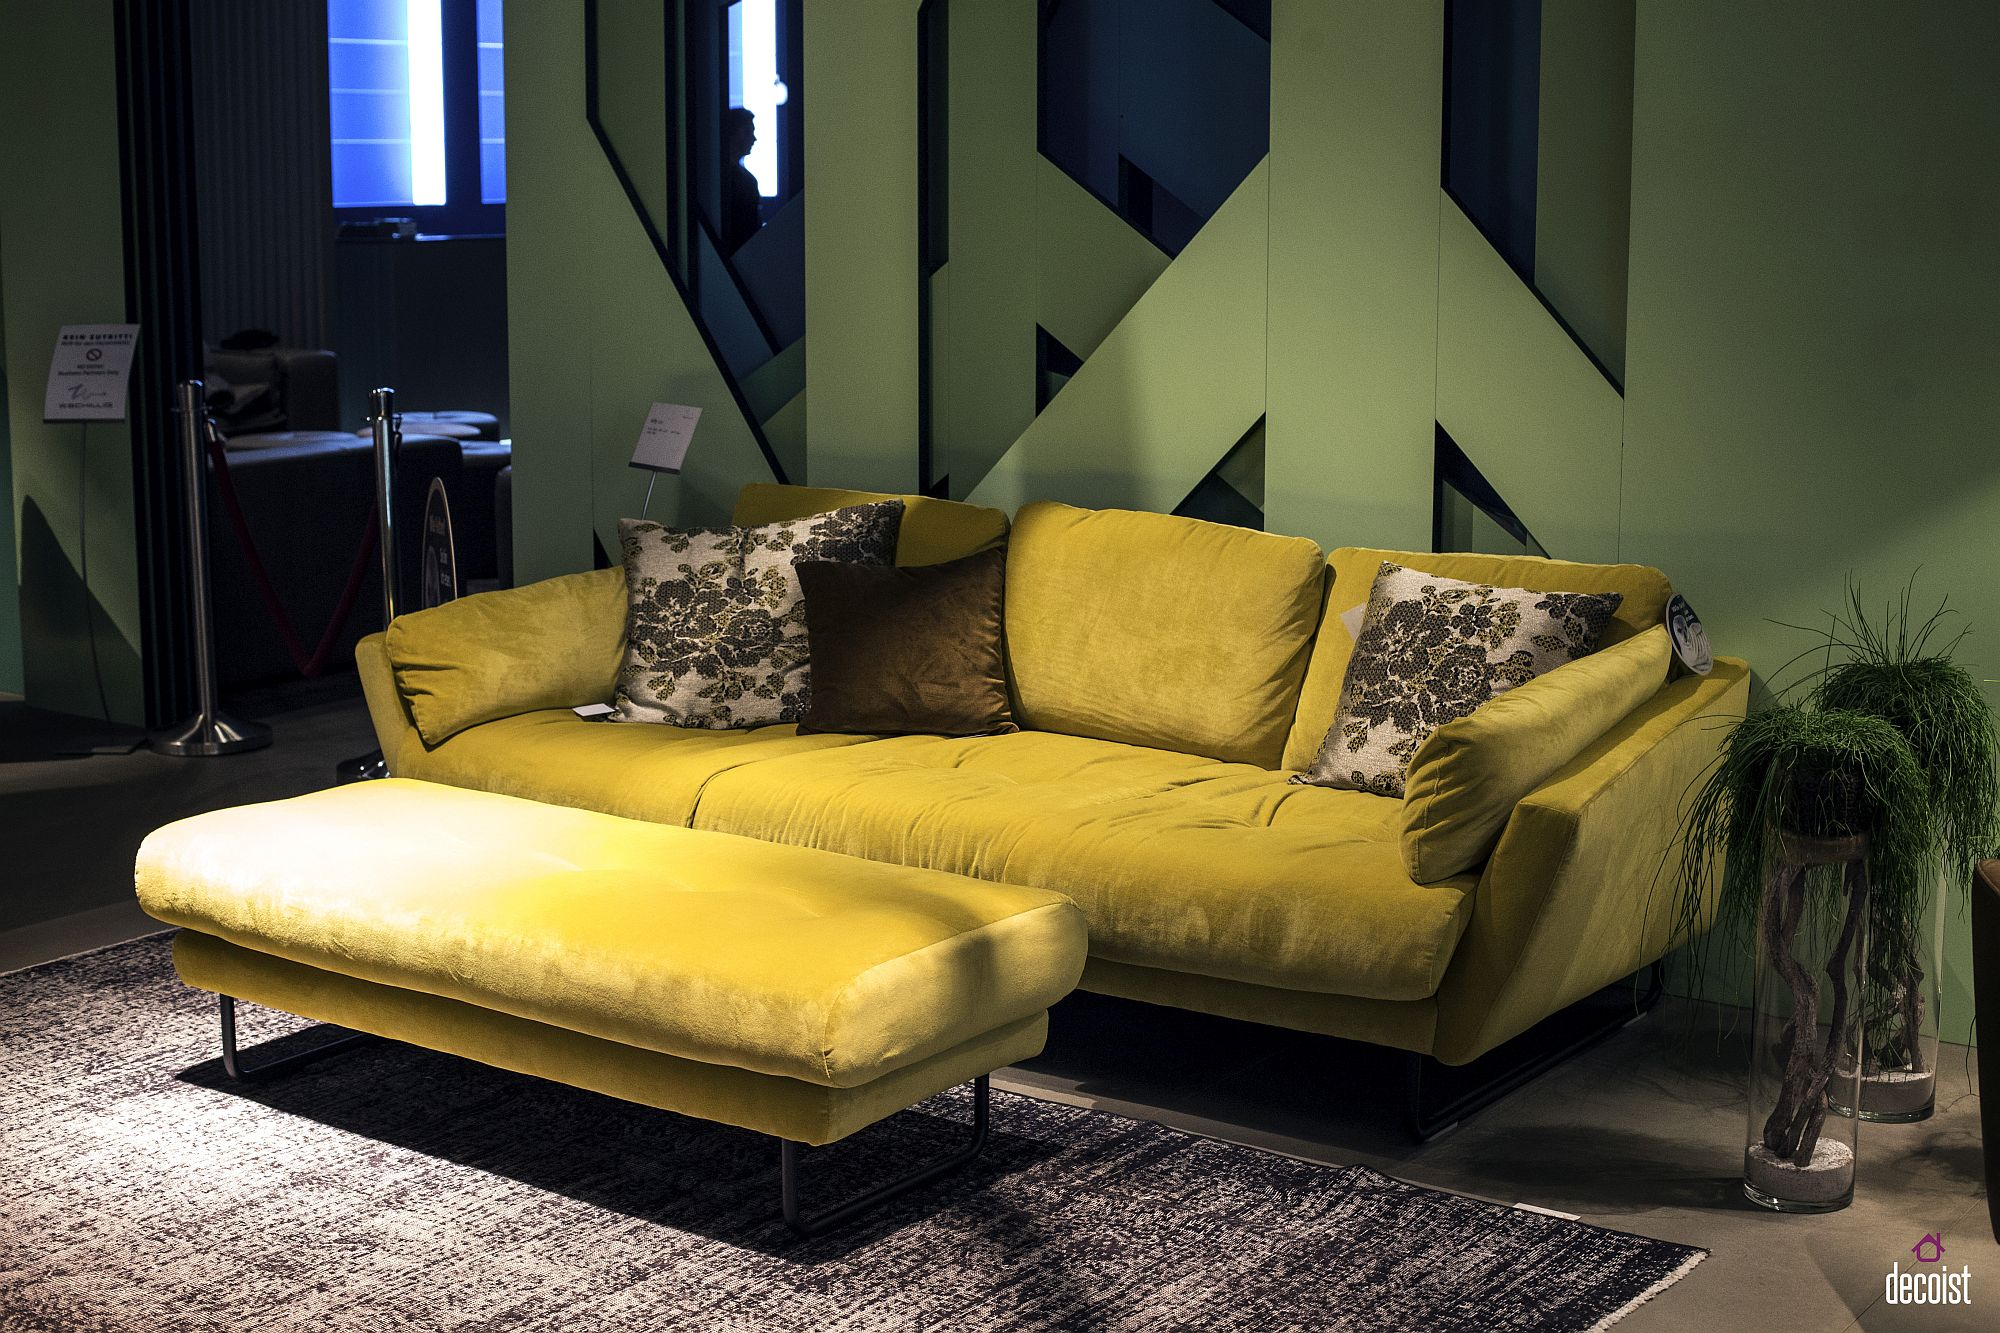 30 Bright And Comfy Sofas That Add Color To The Living Room